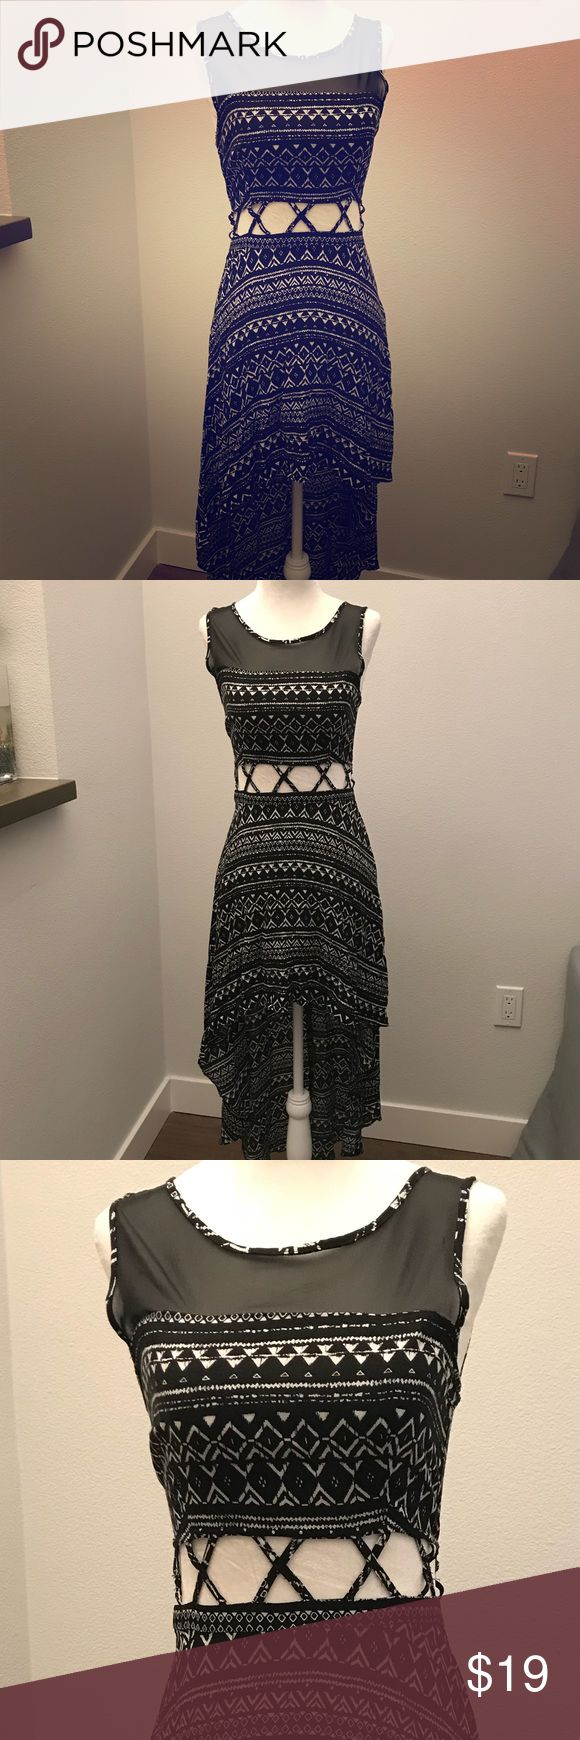 A symmetrical tank dress Stylish asymmetrical black and white tank dress with cut out X design around the stomach. Shoulder Lace design. Forever 21 Dresses Maxi